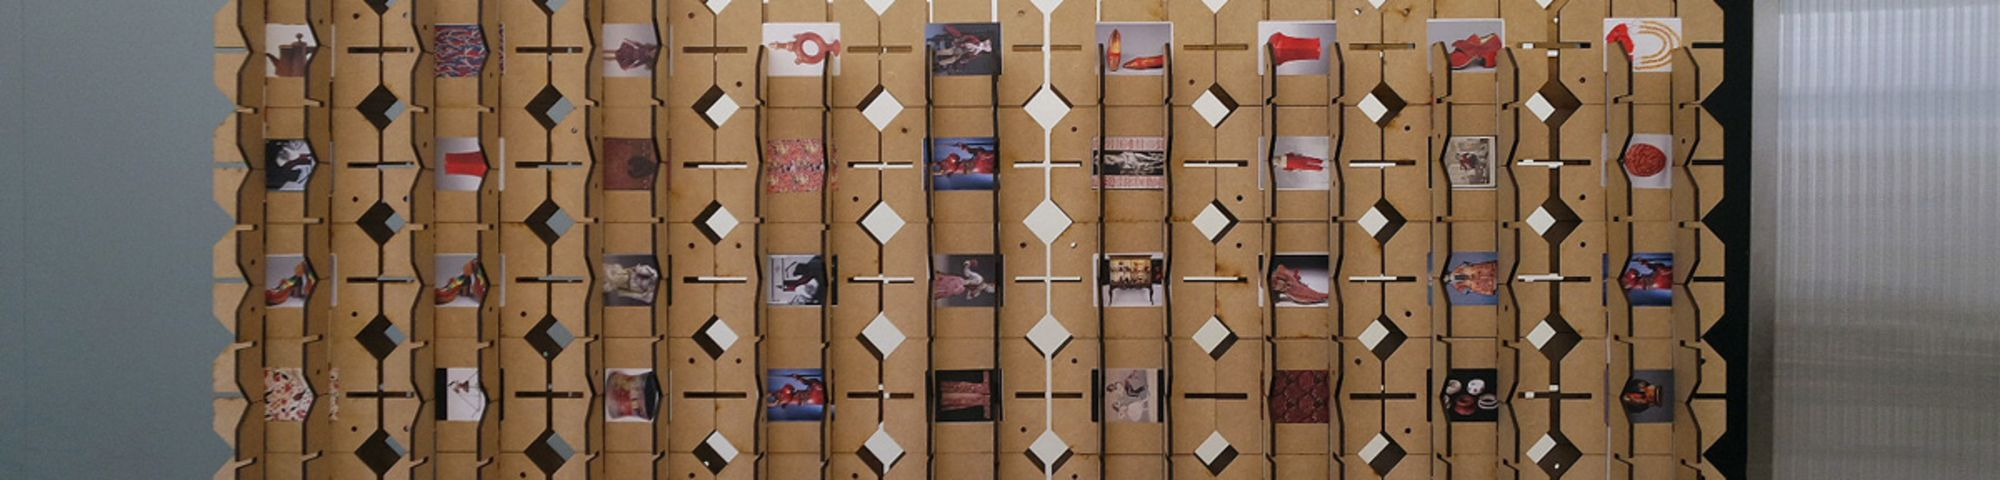 Photograph of Leanne's work using book covers to create a 3D structure.